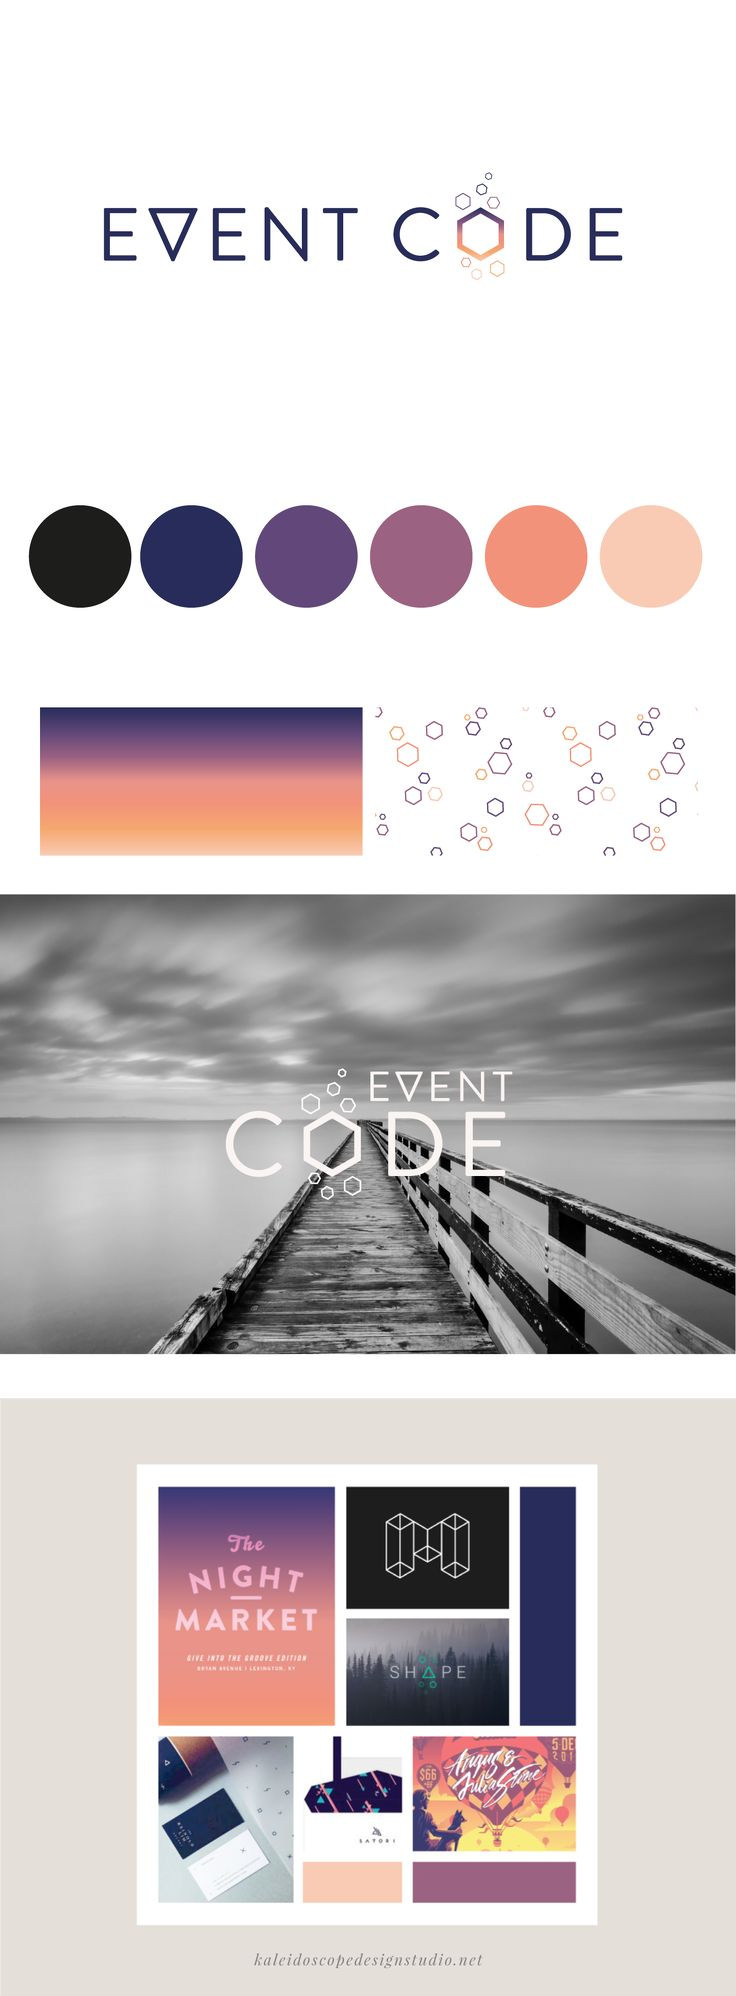 Event Code Brand Styling - Kaleidoscope Design Studio